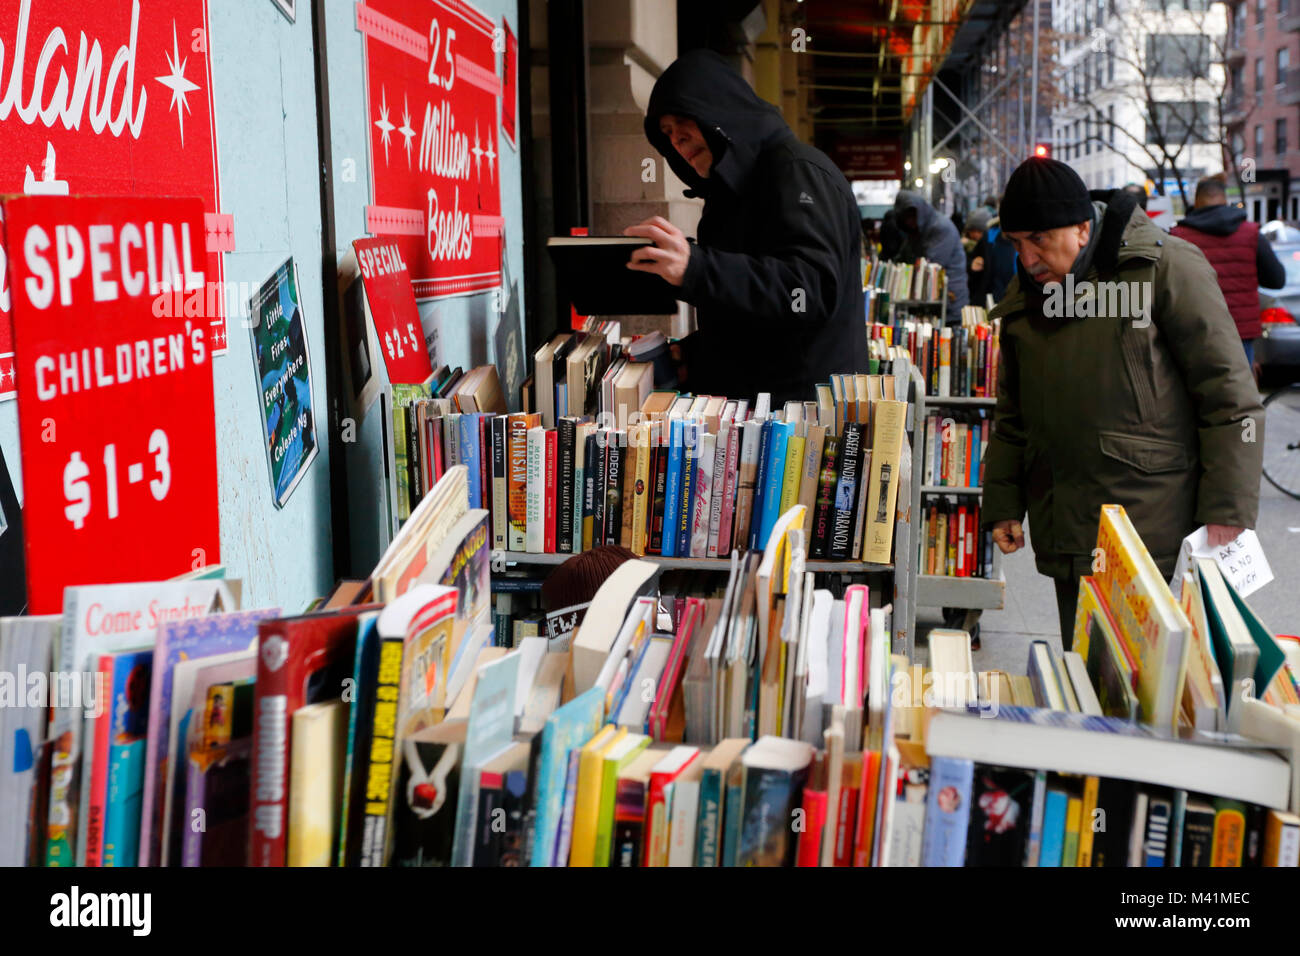 People browsing used books outside Strand Bookstore in New York, NY - Stock Image